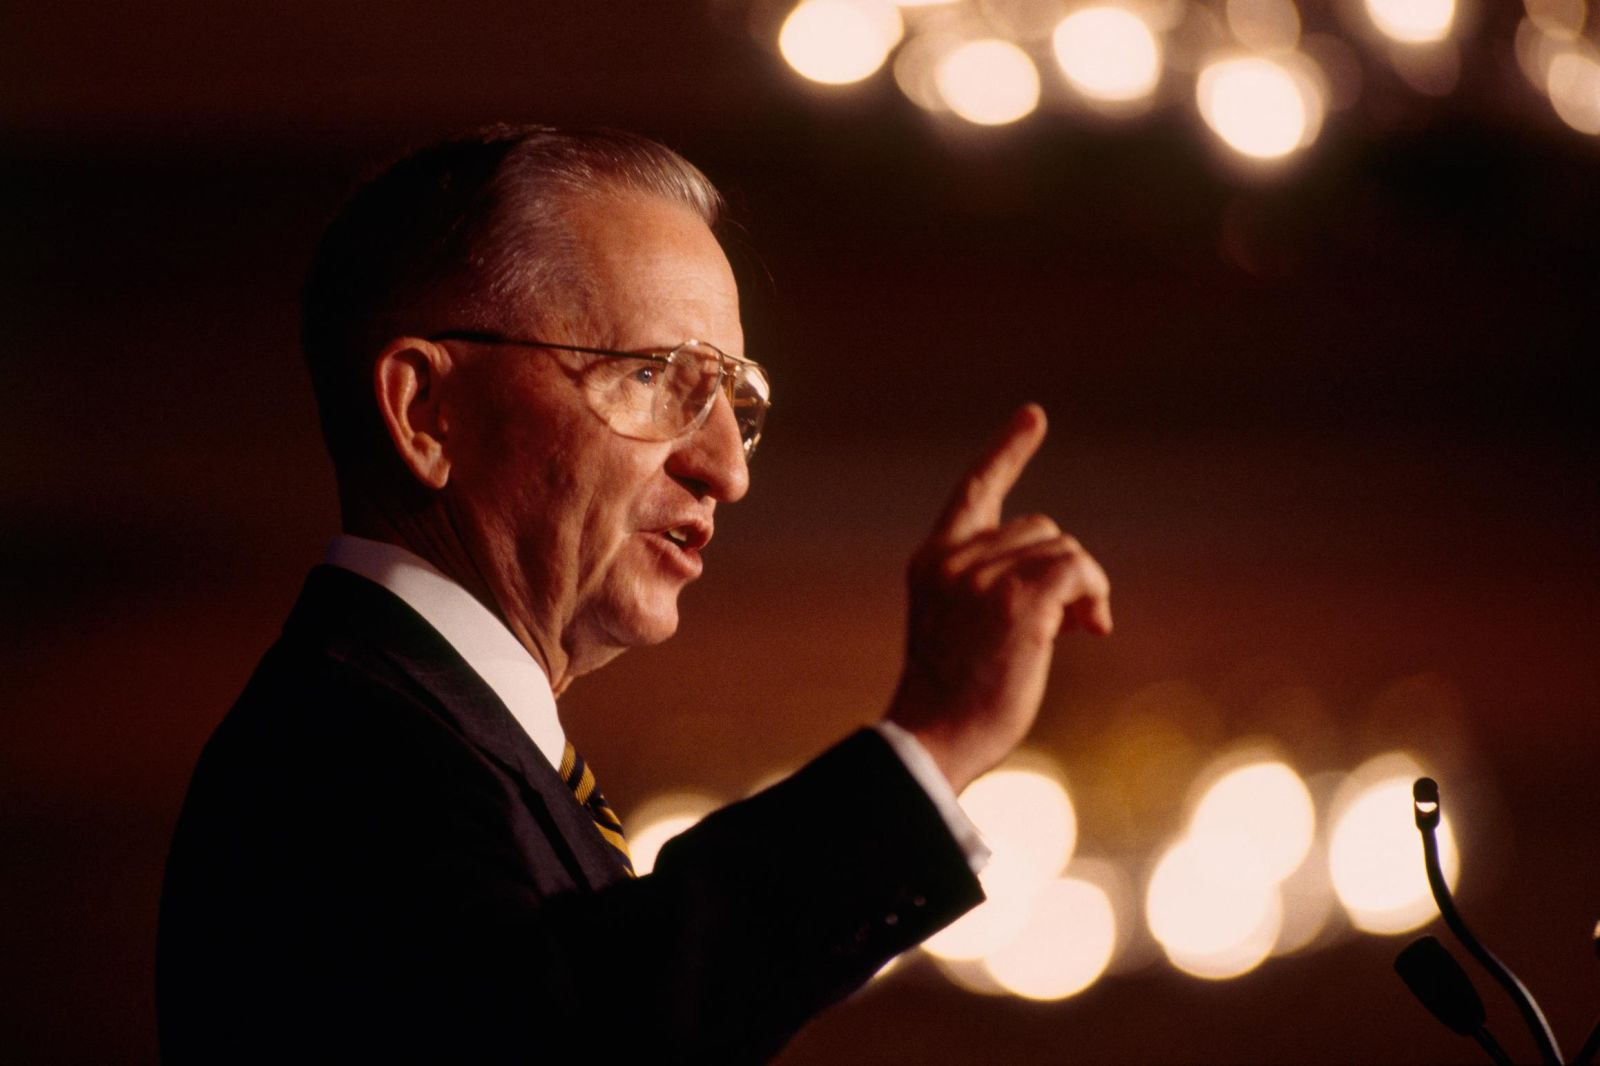 Ross Perot's life in pictures